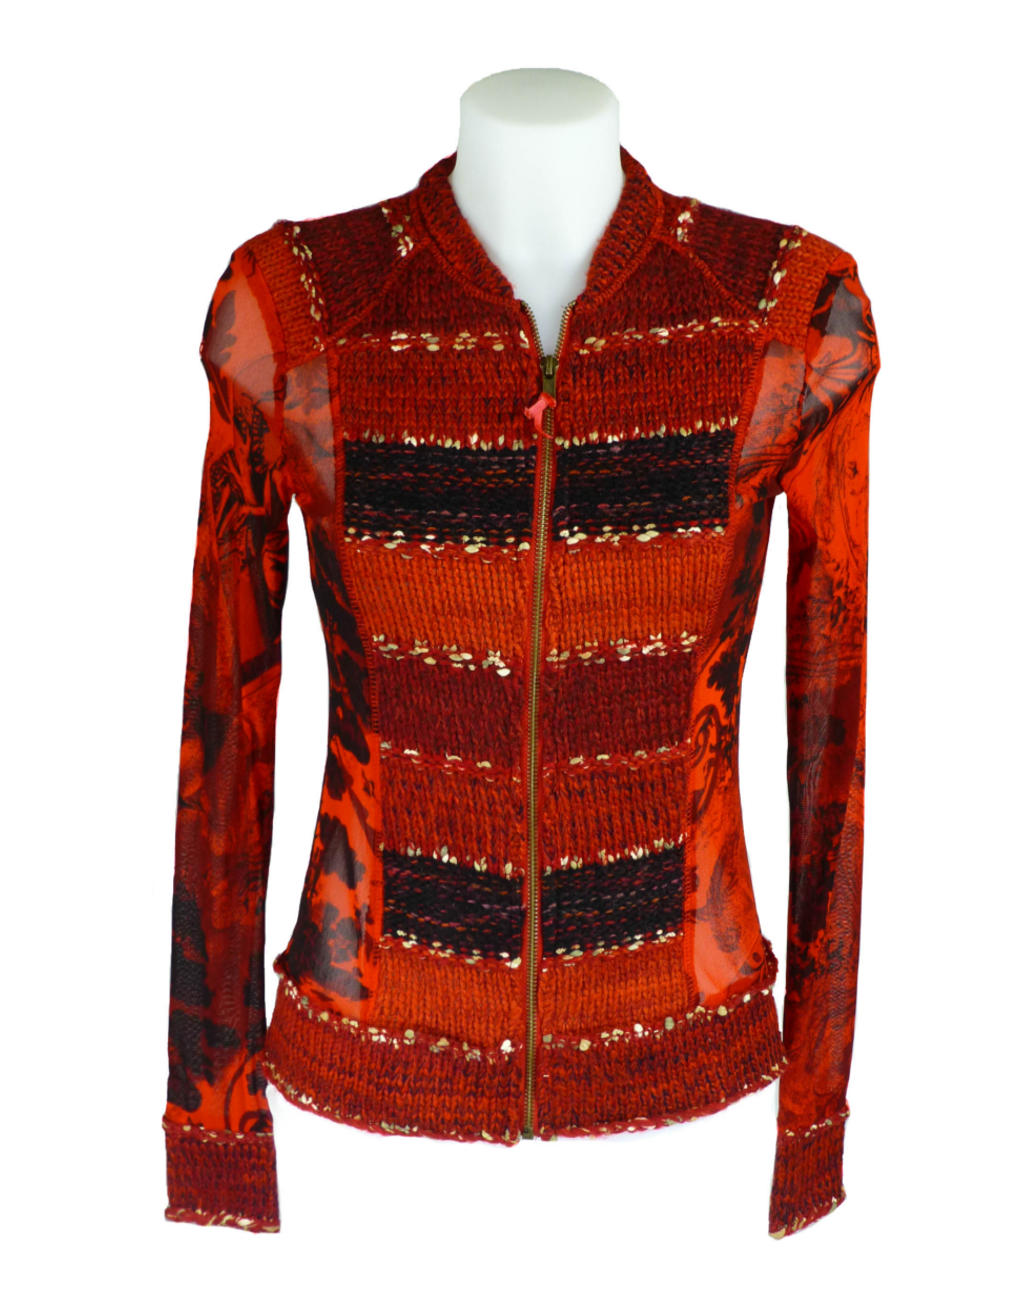 Lulu H French Style Red Patterned Summer Top